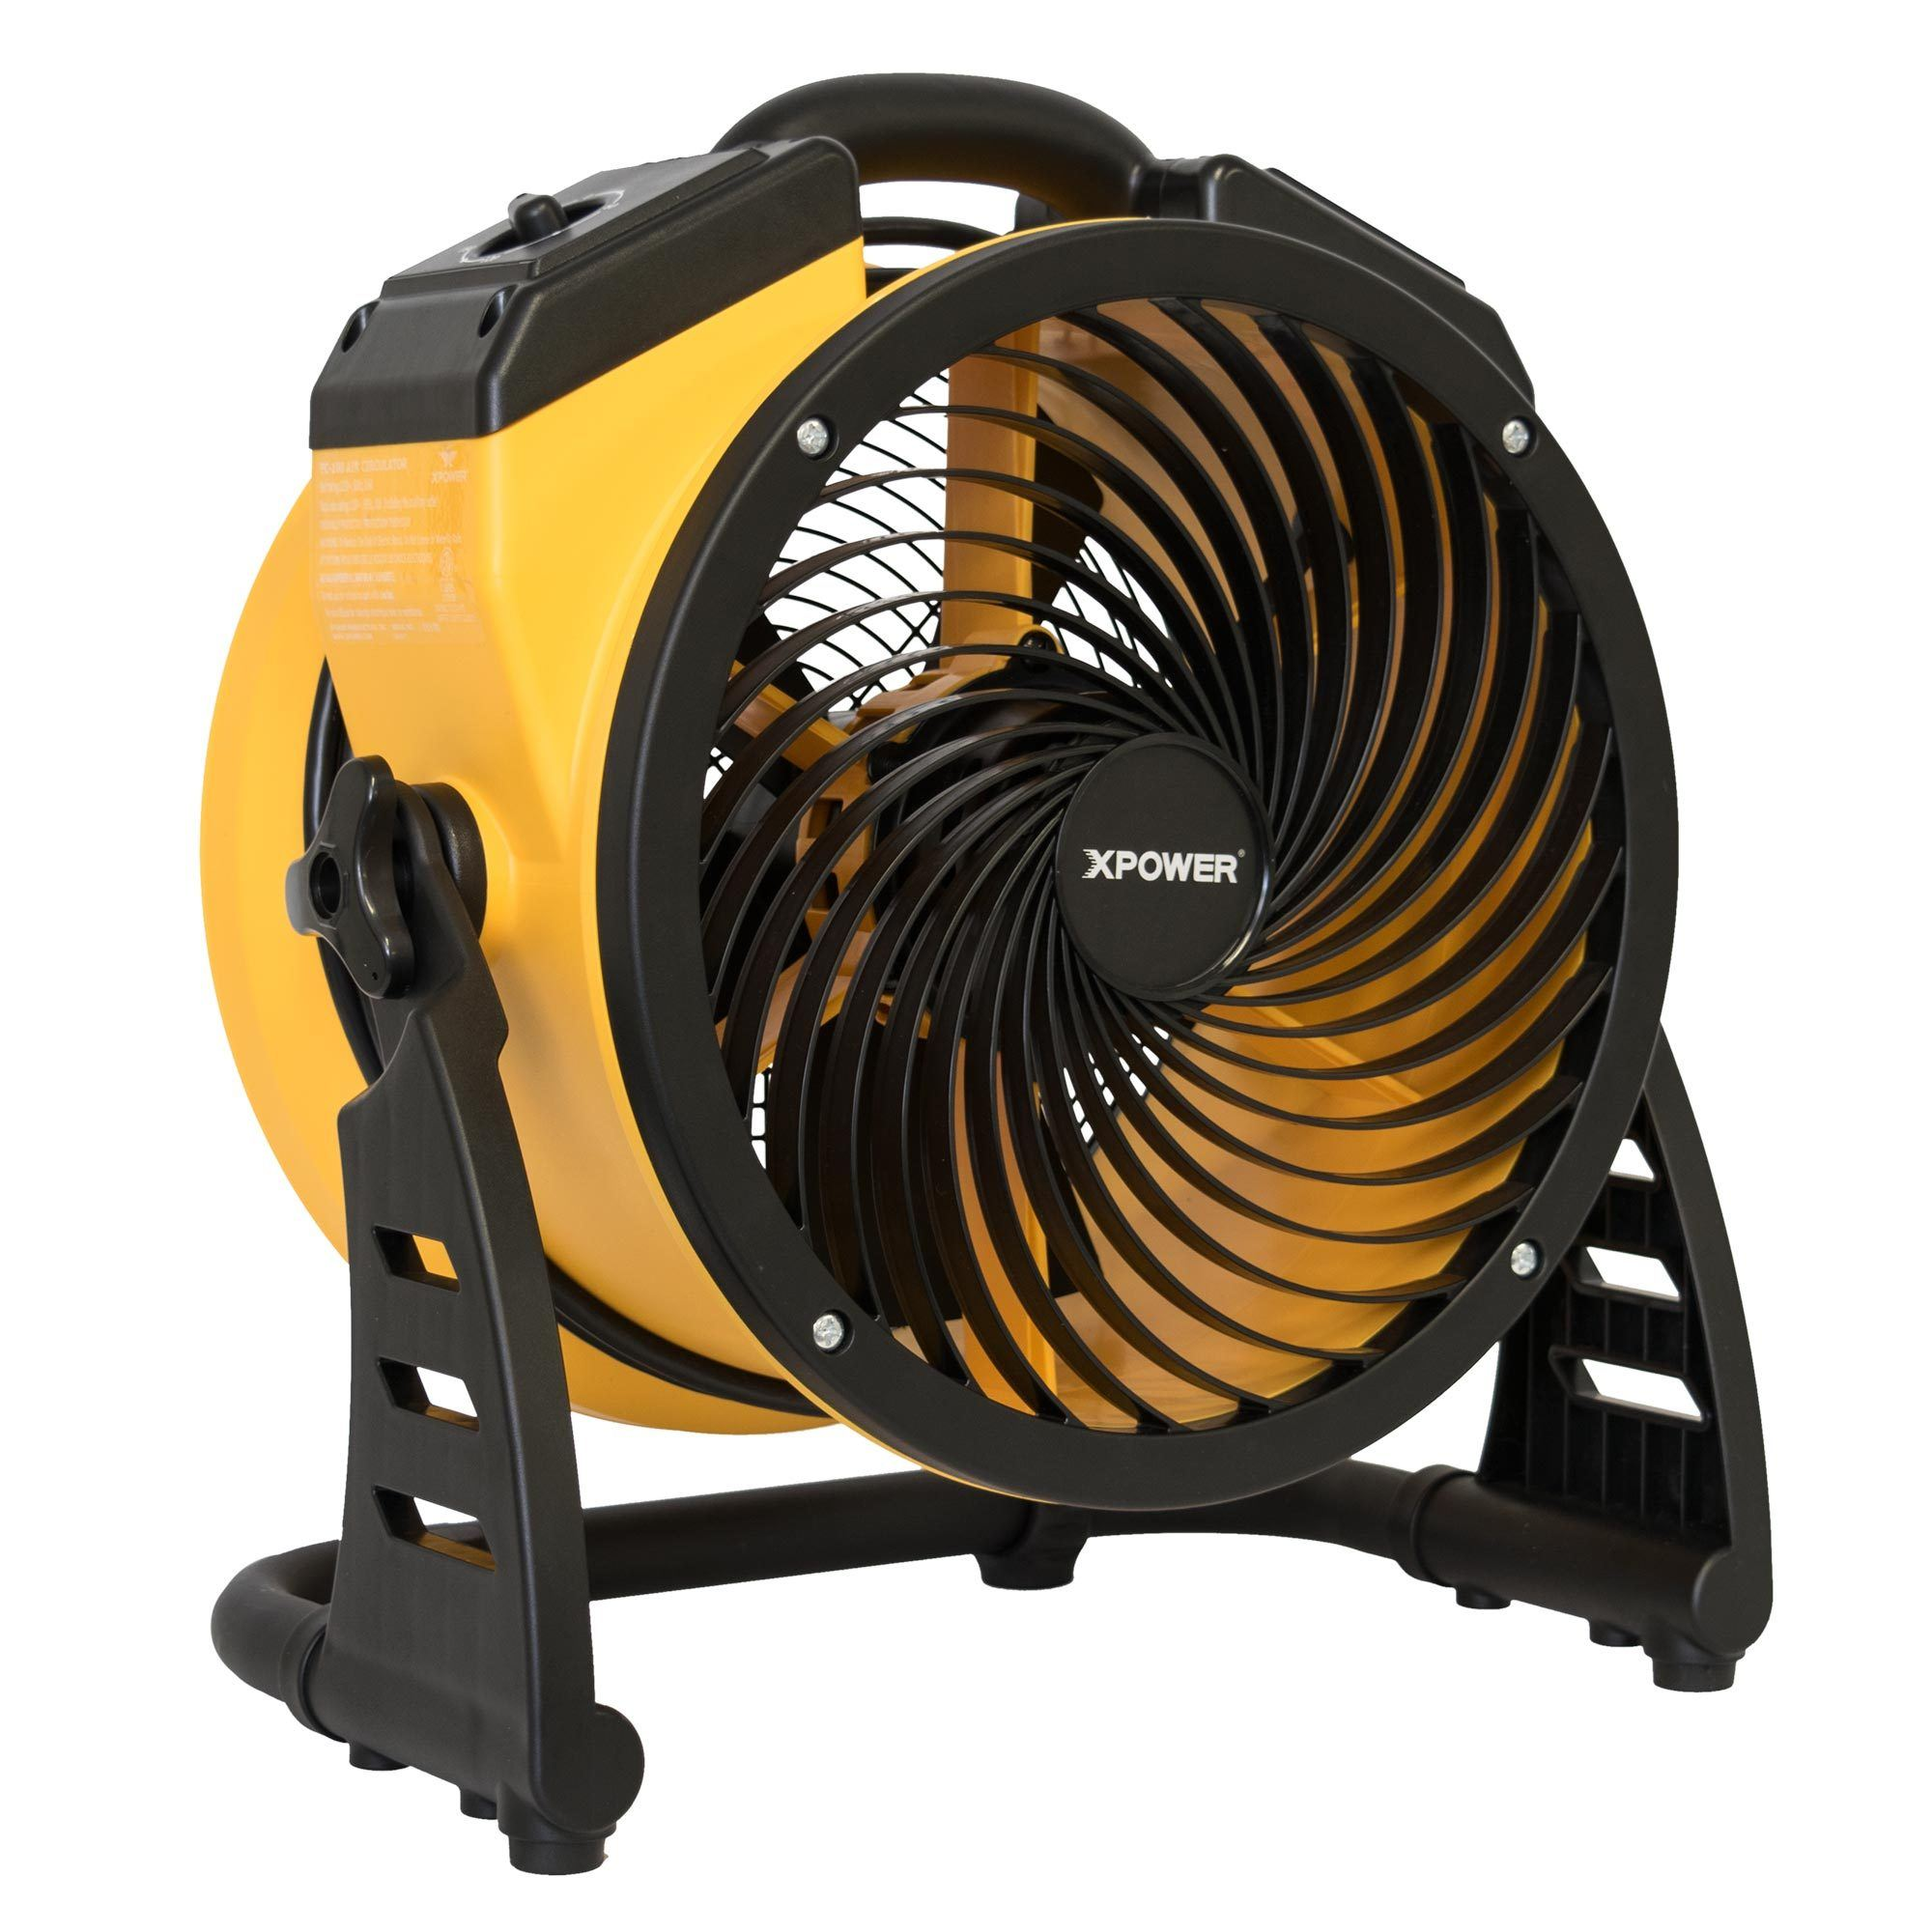 janitorial-utility-fans-and-blowers.jpg